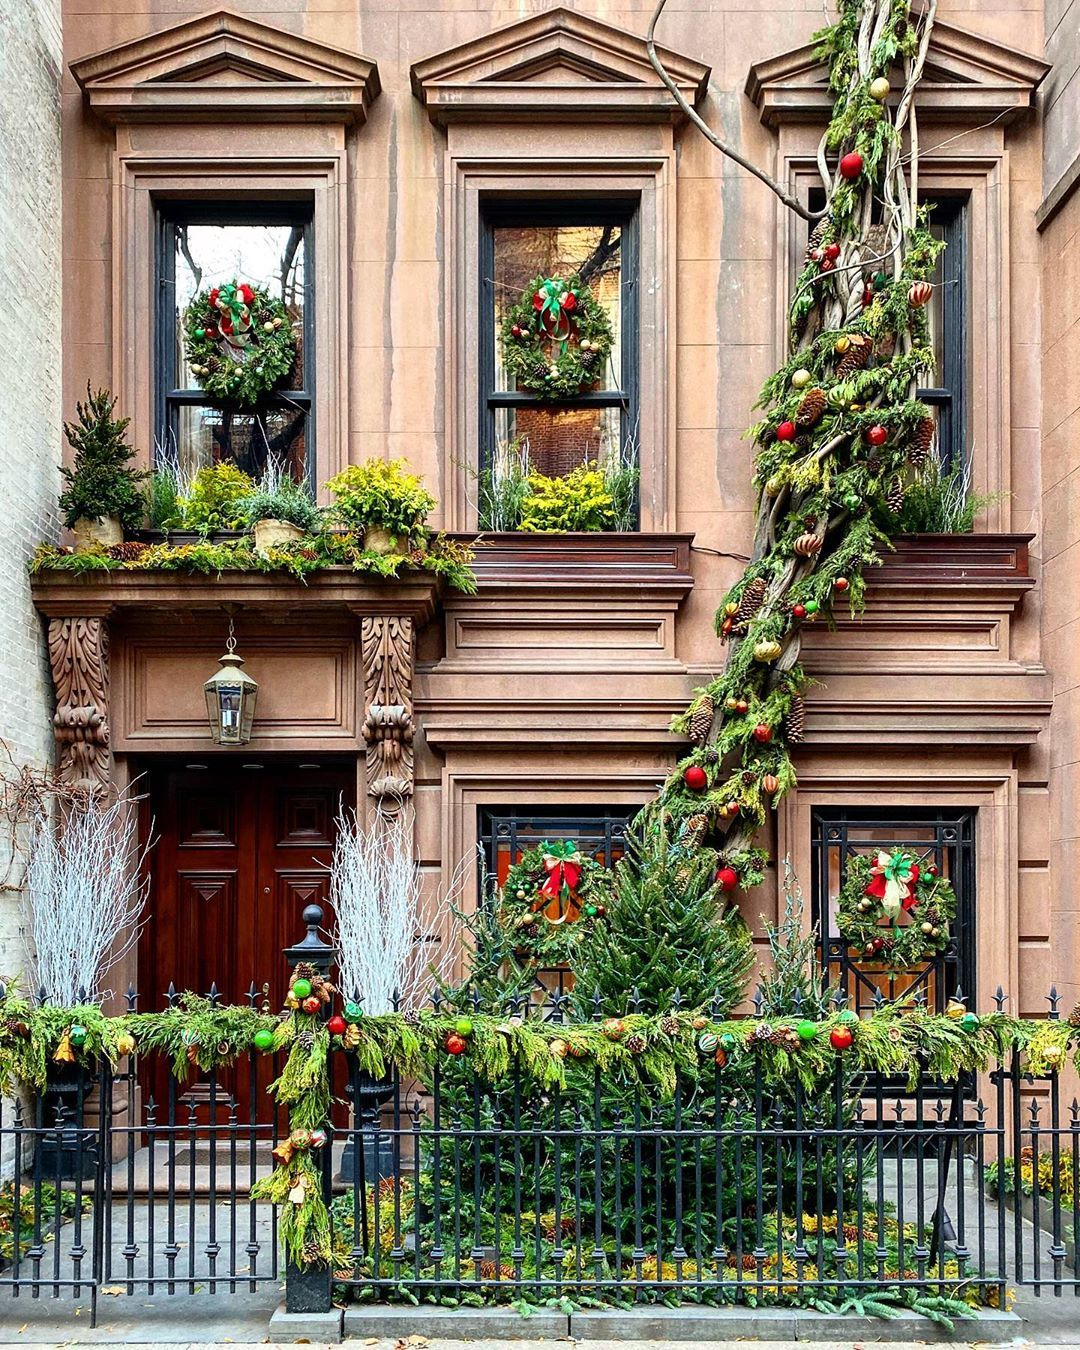 """Habitually Chic® on Instagram: """"The most photographed house each holiday season and for good reason. #christmas #uppereastside #nyc #christmasinnewyork #putawreathonit"""""""